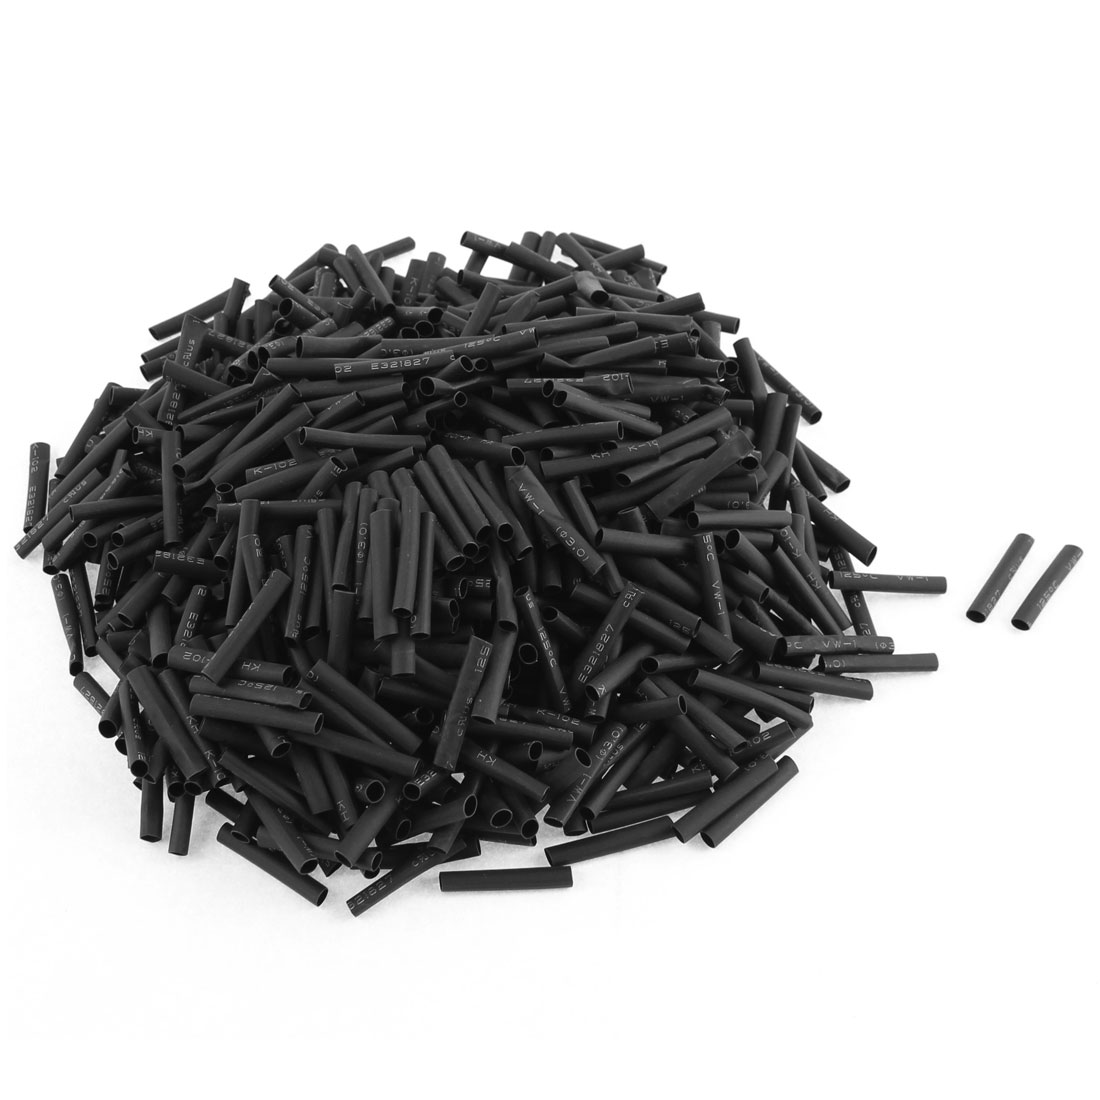 "Electrical Connection Cable Sleeve 1"" Length Heat Shrink Tubing Black 800Pcs"